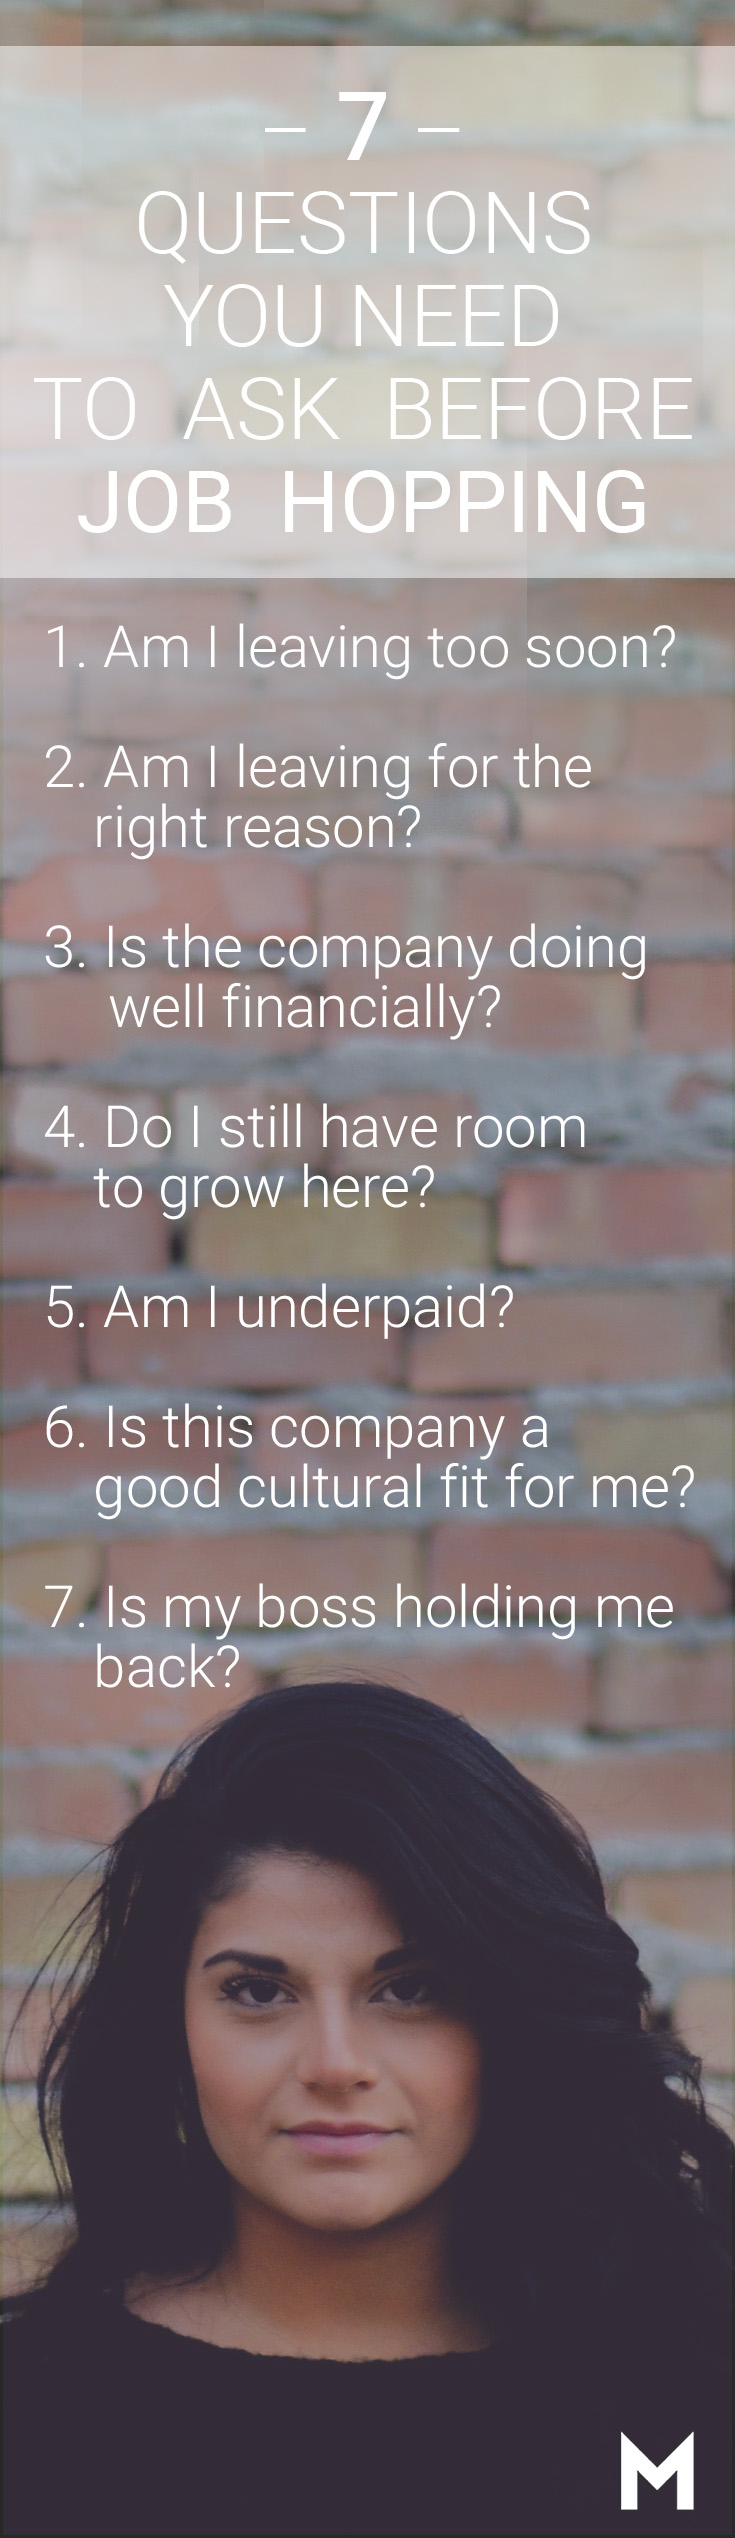 7 practical questions millennials need to ask before job